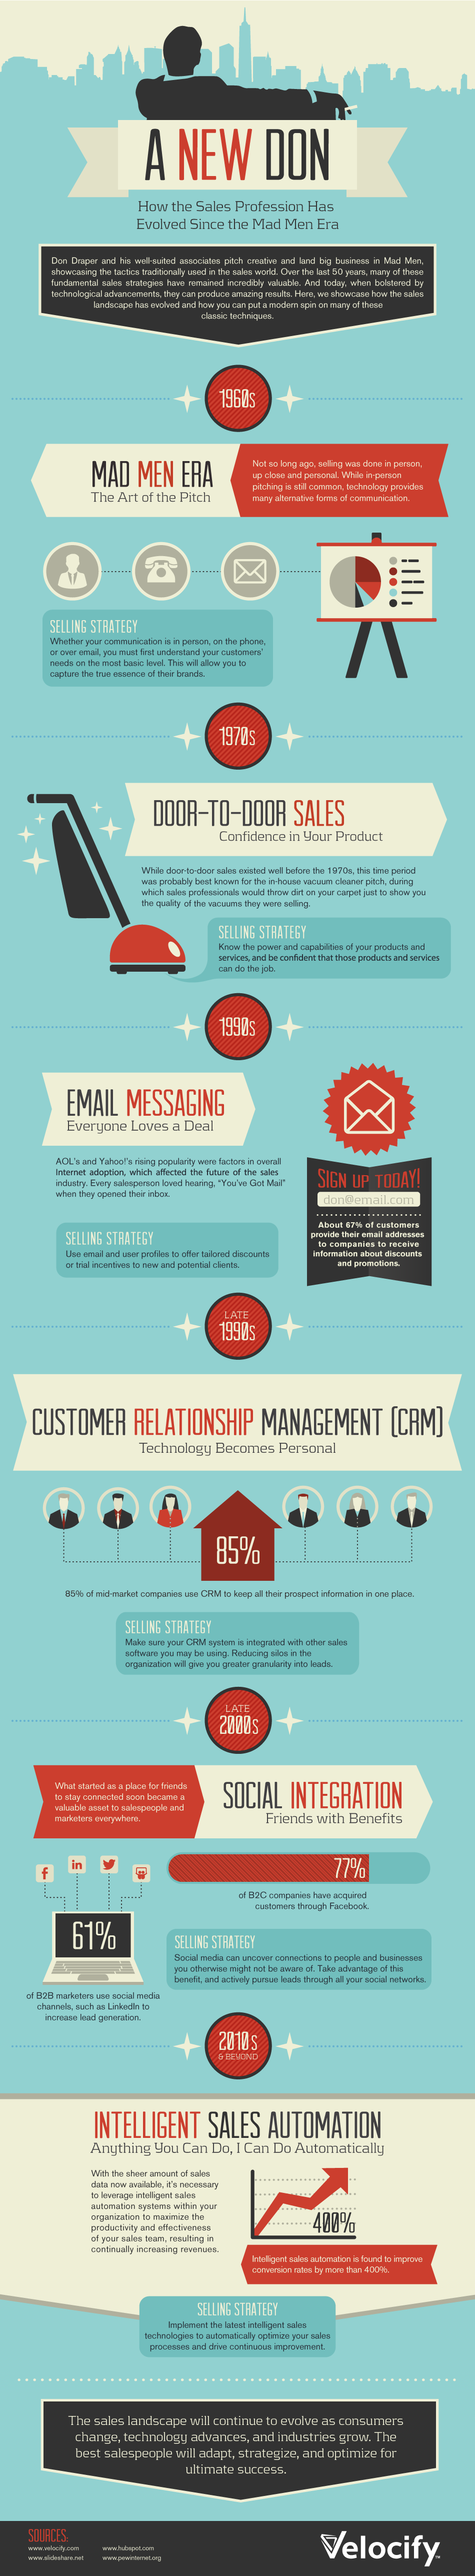 Infographic: From the Mad Men Era to Modern Intelligent Sales Automation